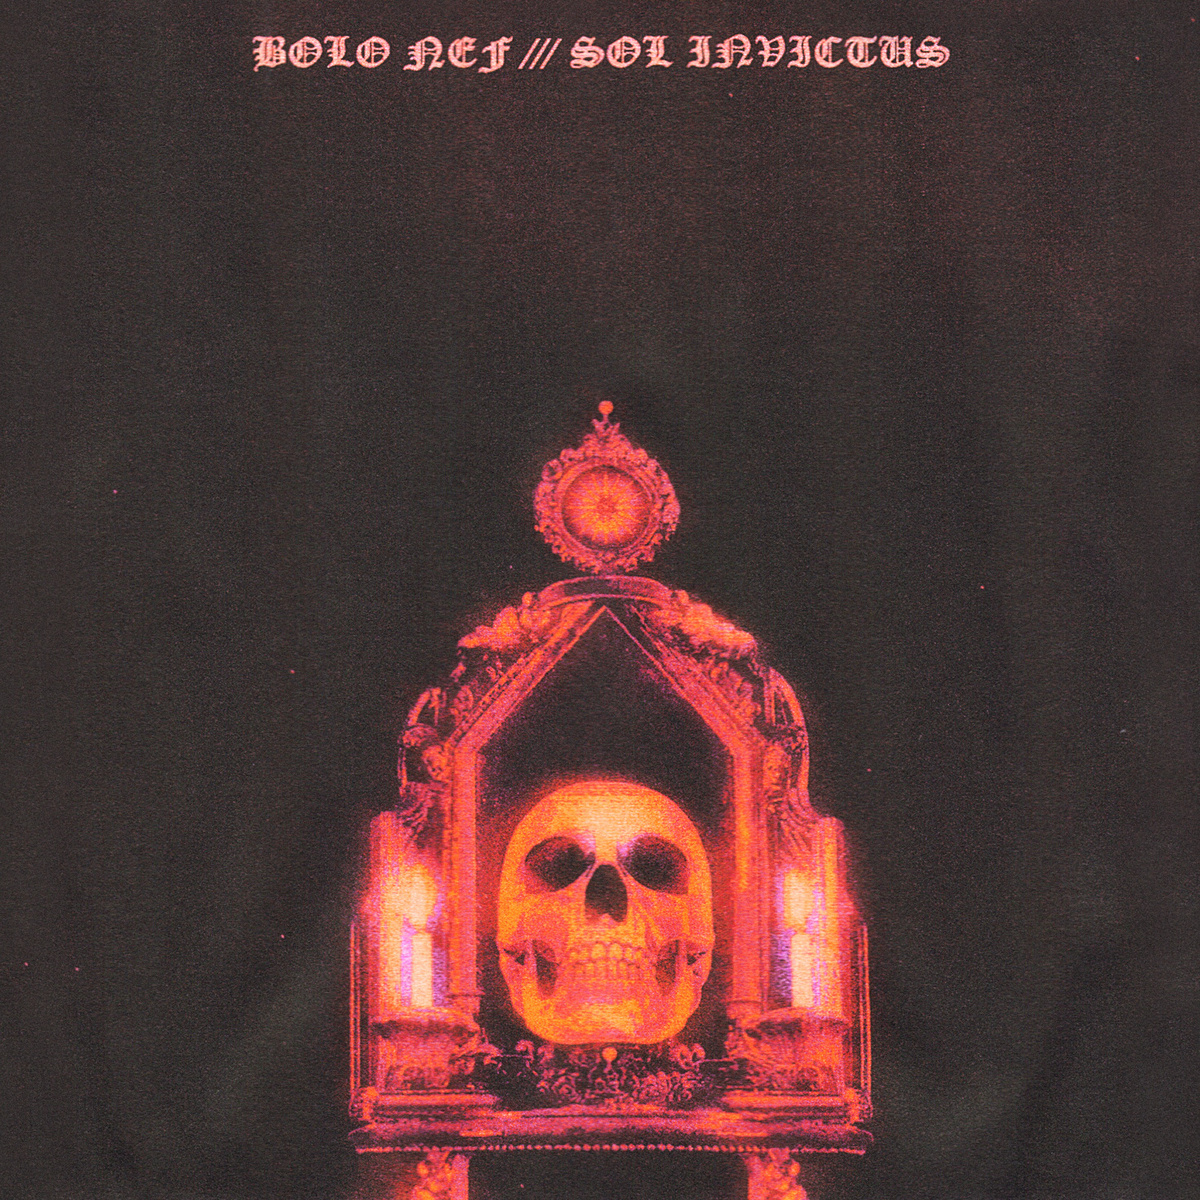 Sorry, I'm a God: Bolo Nef's Sol Invictus is Truly Scary Horror Rap